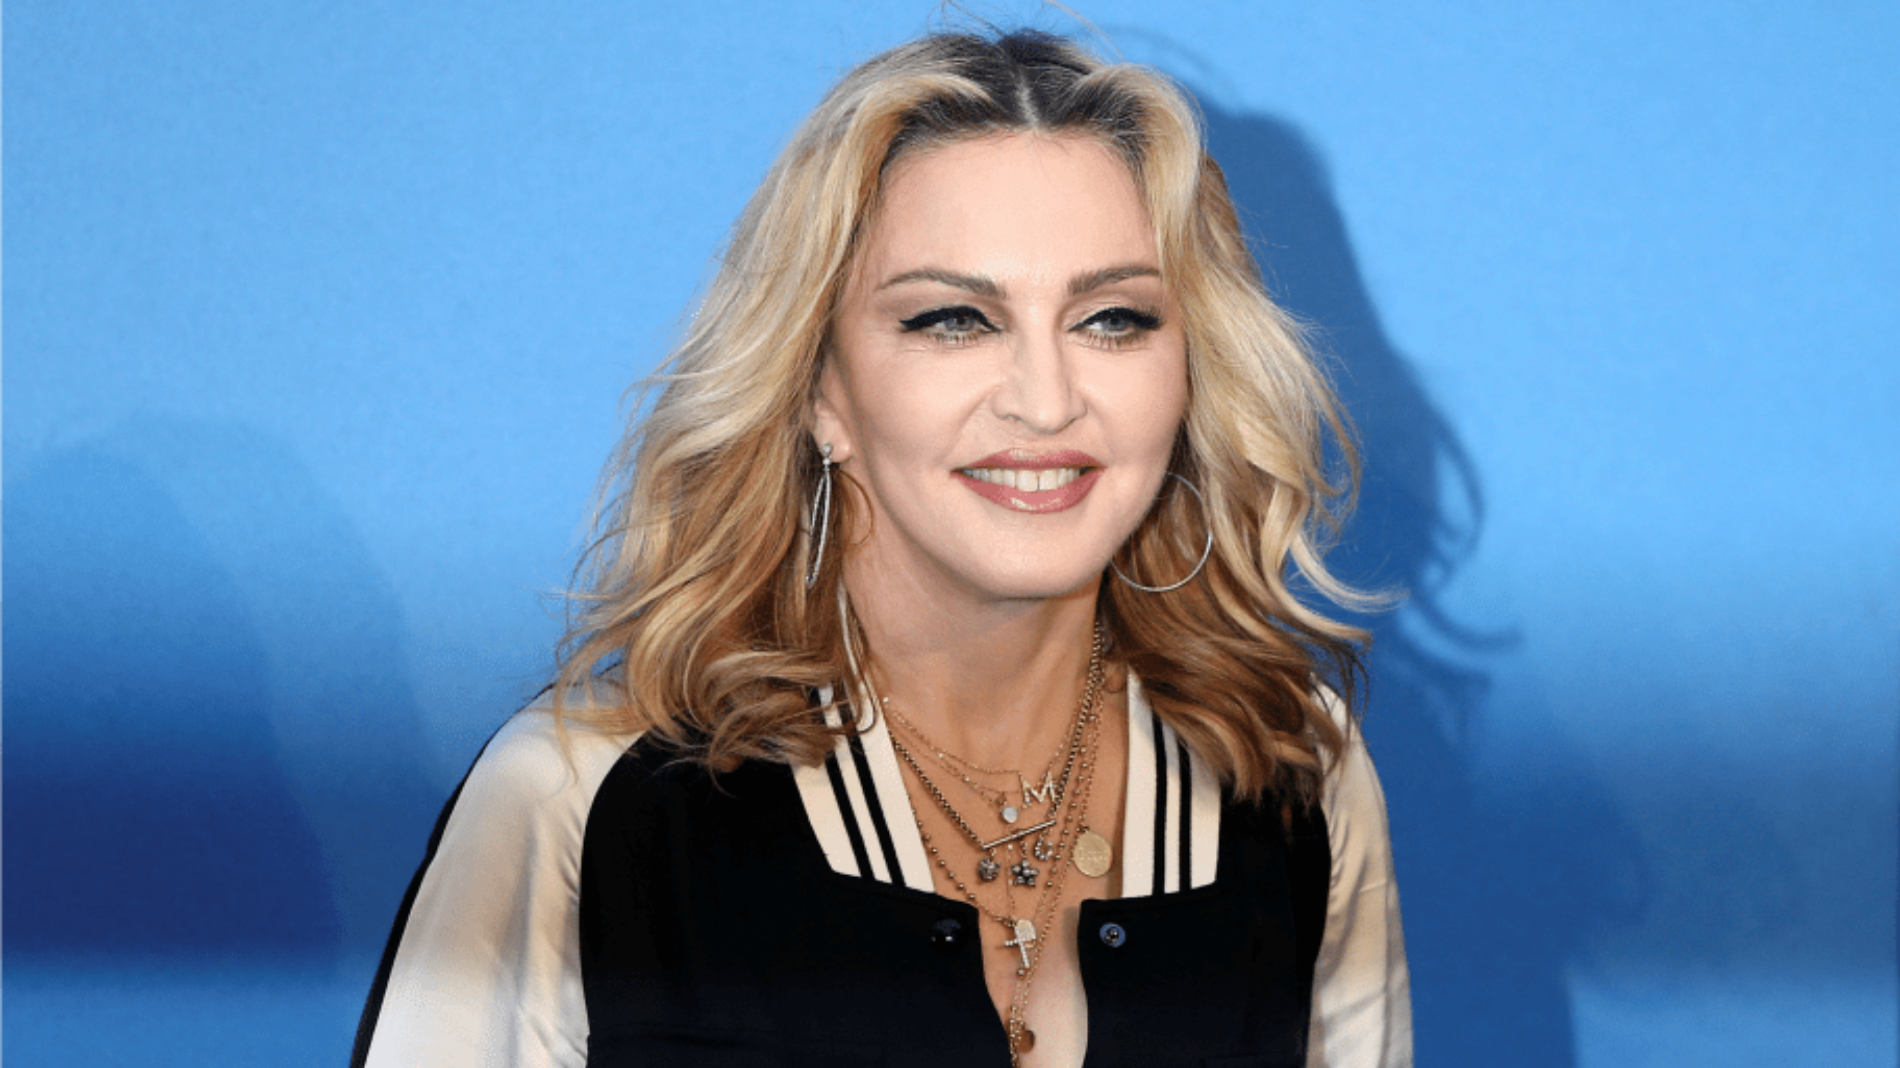 Madonna was fined a million dollars by Russia for speaking about gay rights. And she's not paying